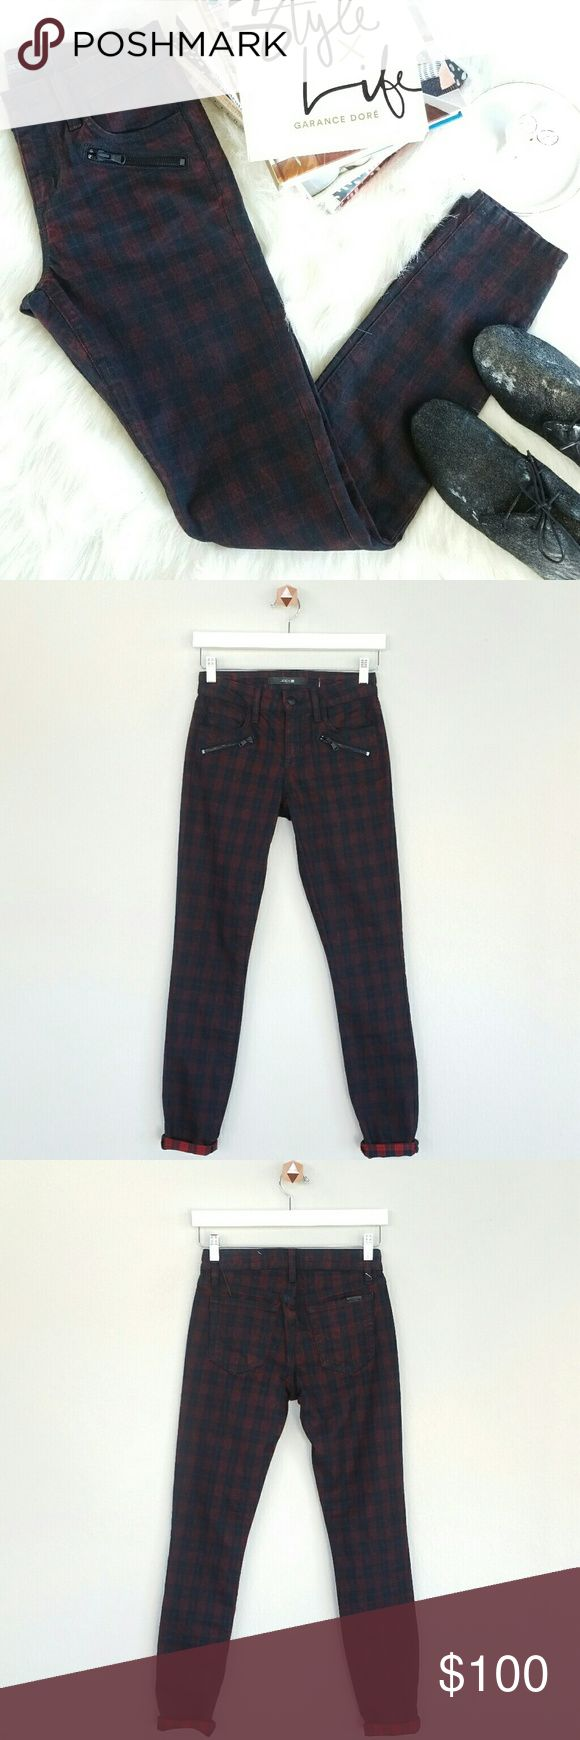 """JOE'S JEANS plaid tartan print skinny pants Plaid tartan print coated skinny jeans. Diagonal front zip pocket. Fabric: 99% cotton, 1% elastane. Color: black and Oxblood red.  Size: 24. Measurement when garment laid flat approximately: Waist: 13"""". Hips: 17.5"""". Rise: 8.5"""". Inseam: 30"""". Length: 38.5"""".  NWT. Never worn. Can provide more pictures and info upon request. Joe's Jeans Jeans"""